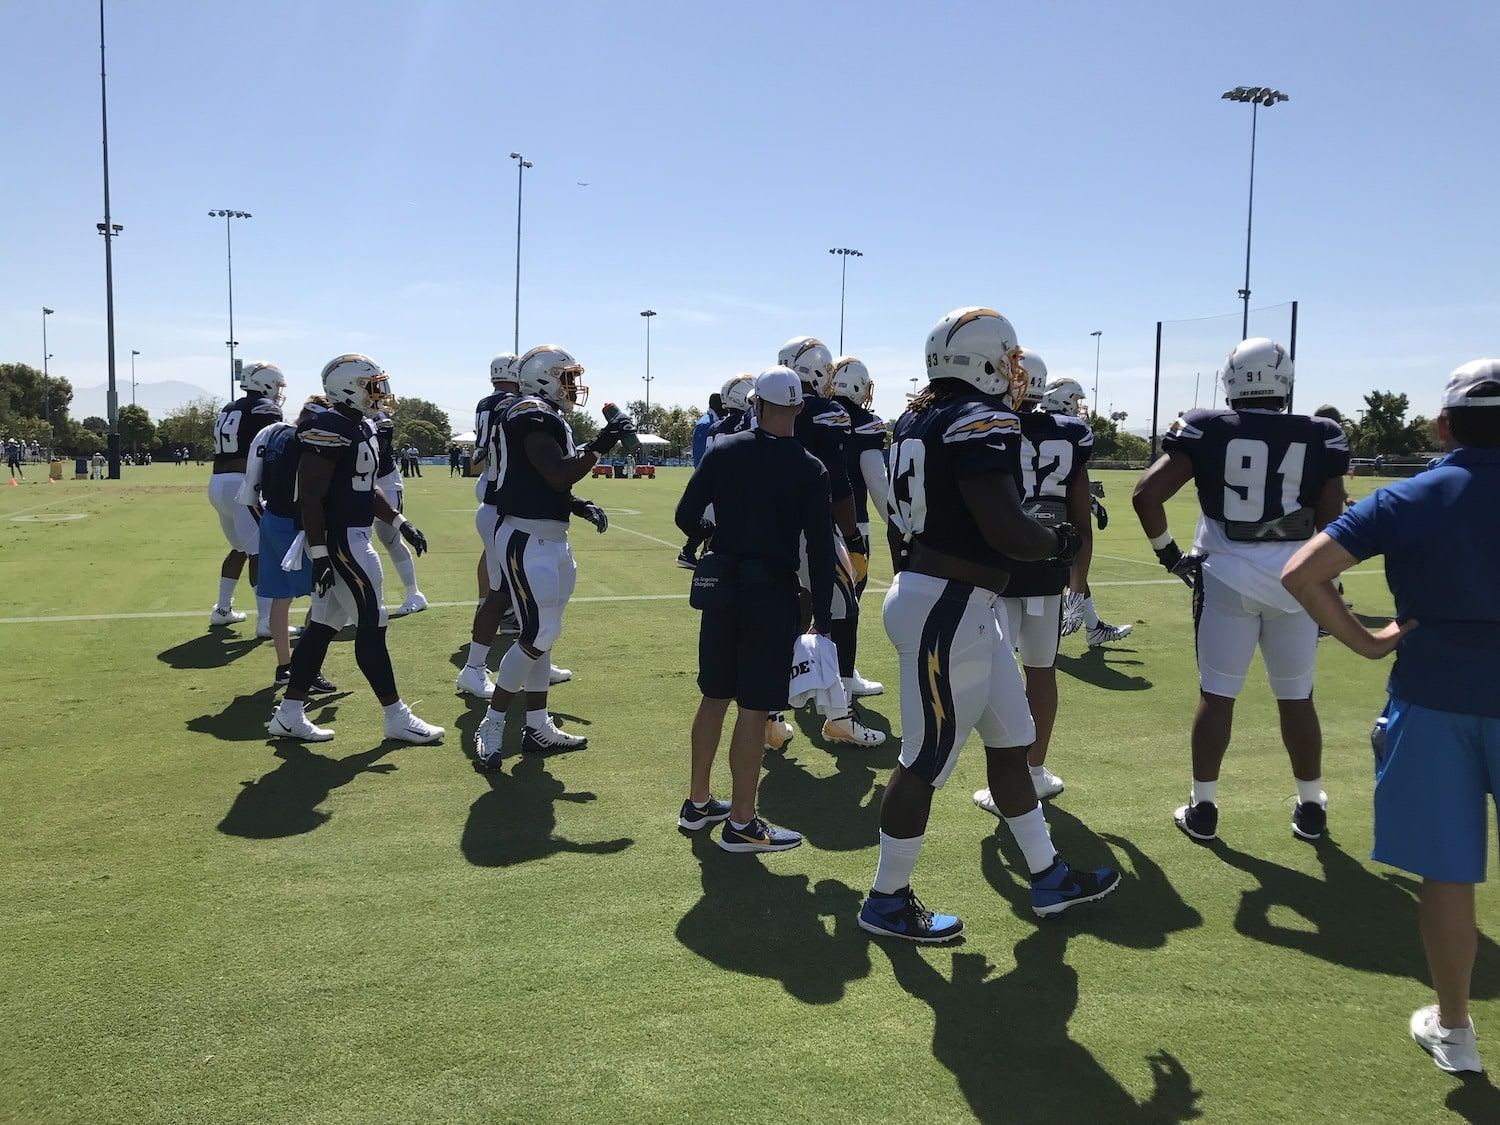 Game By Game Analysis And Predictions For The Chargers 2020 Season